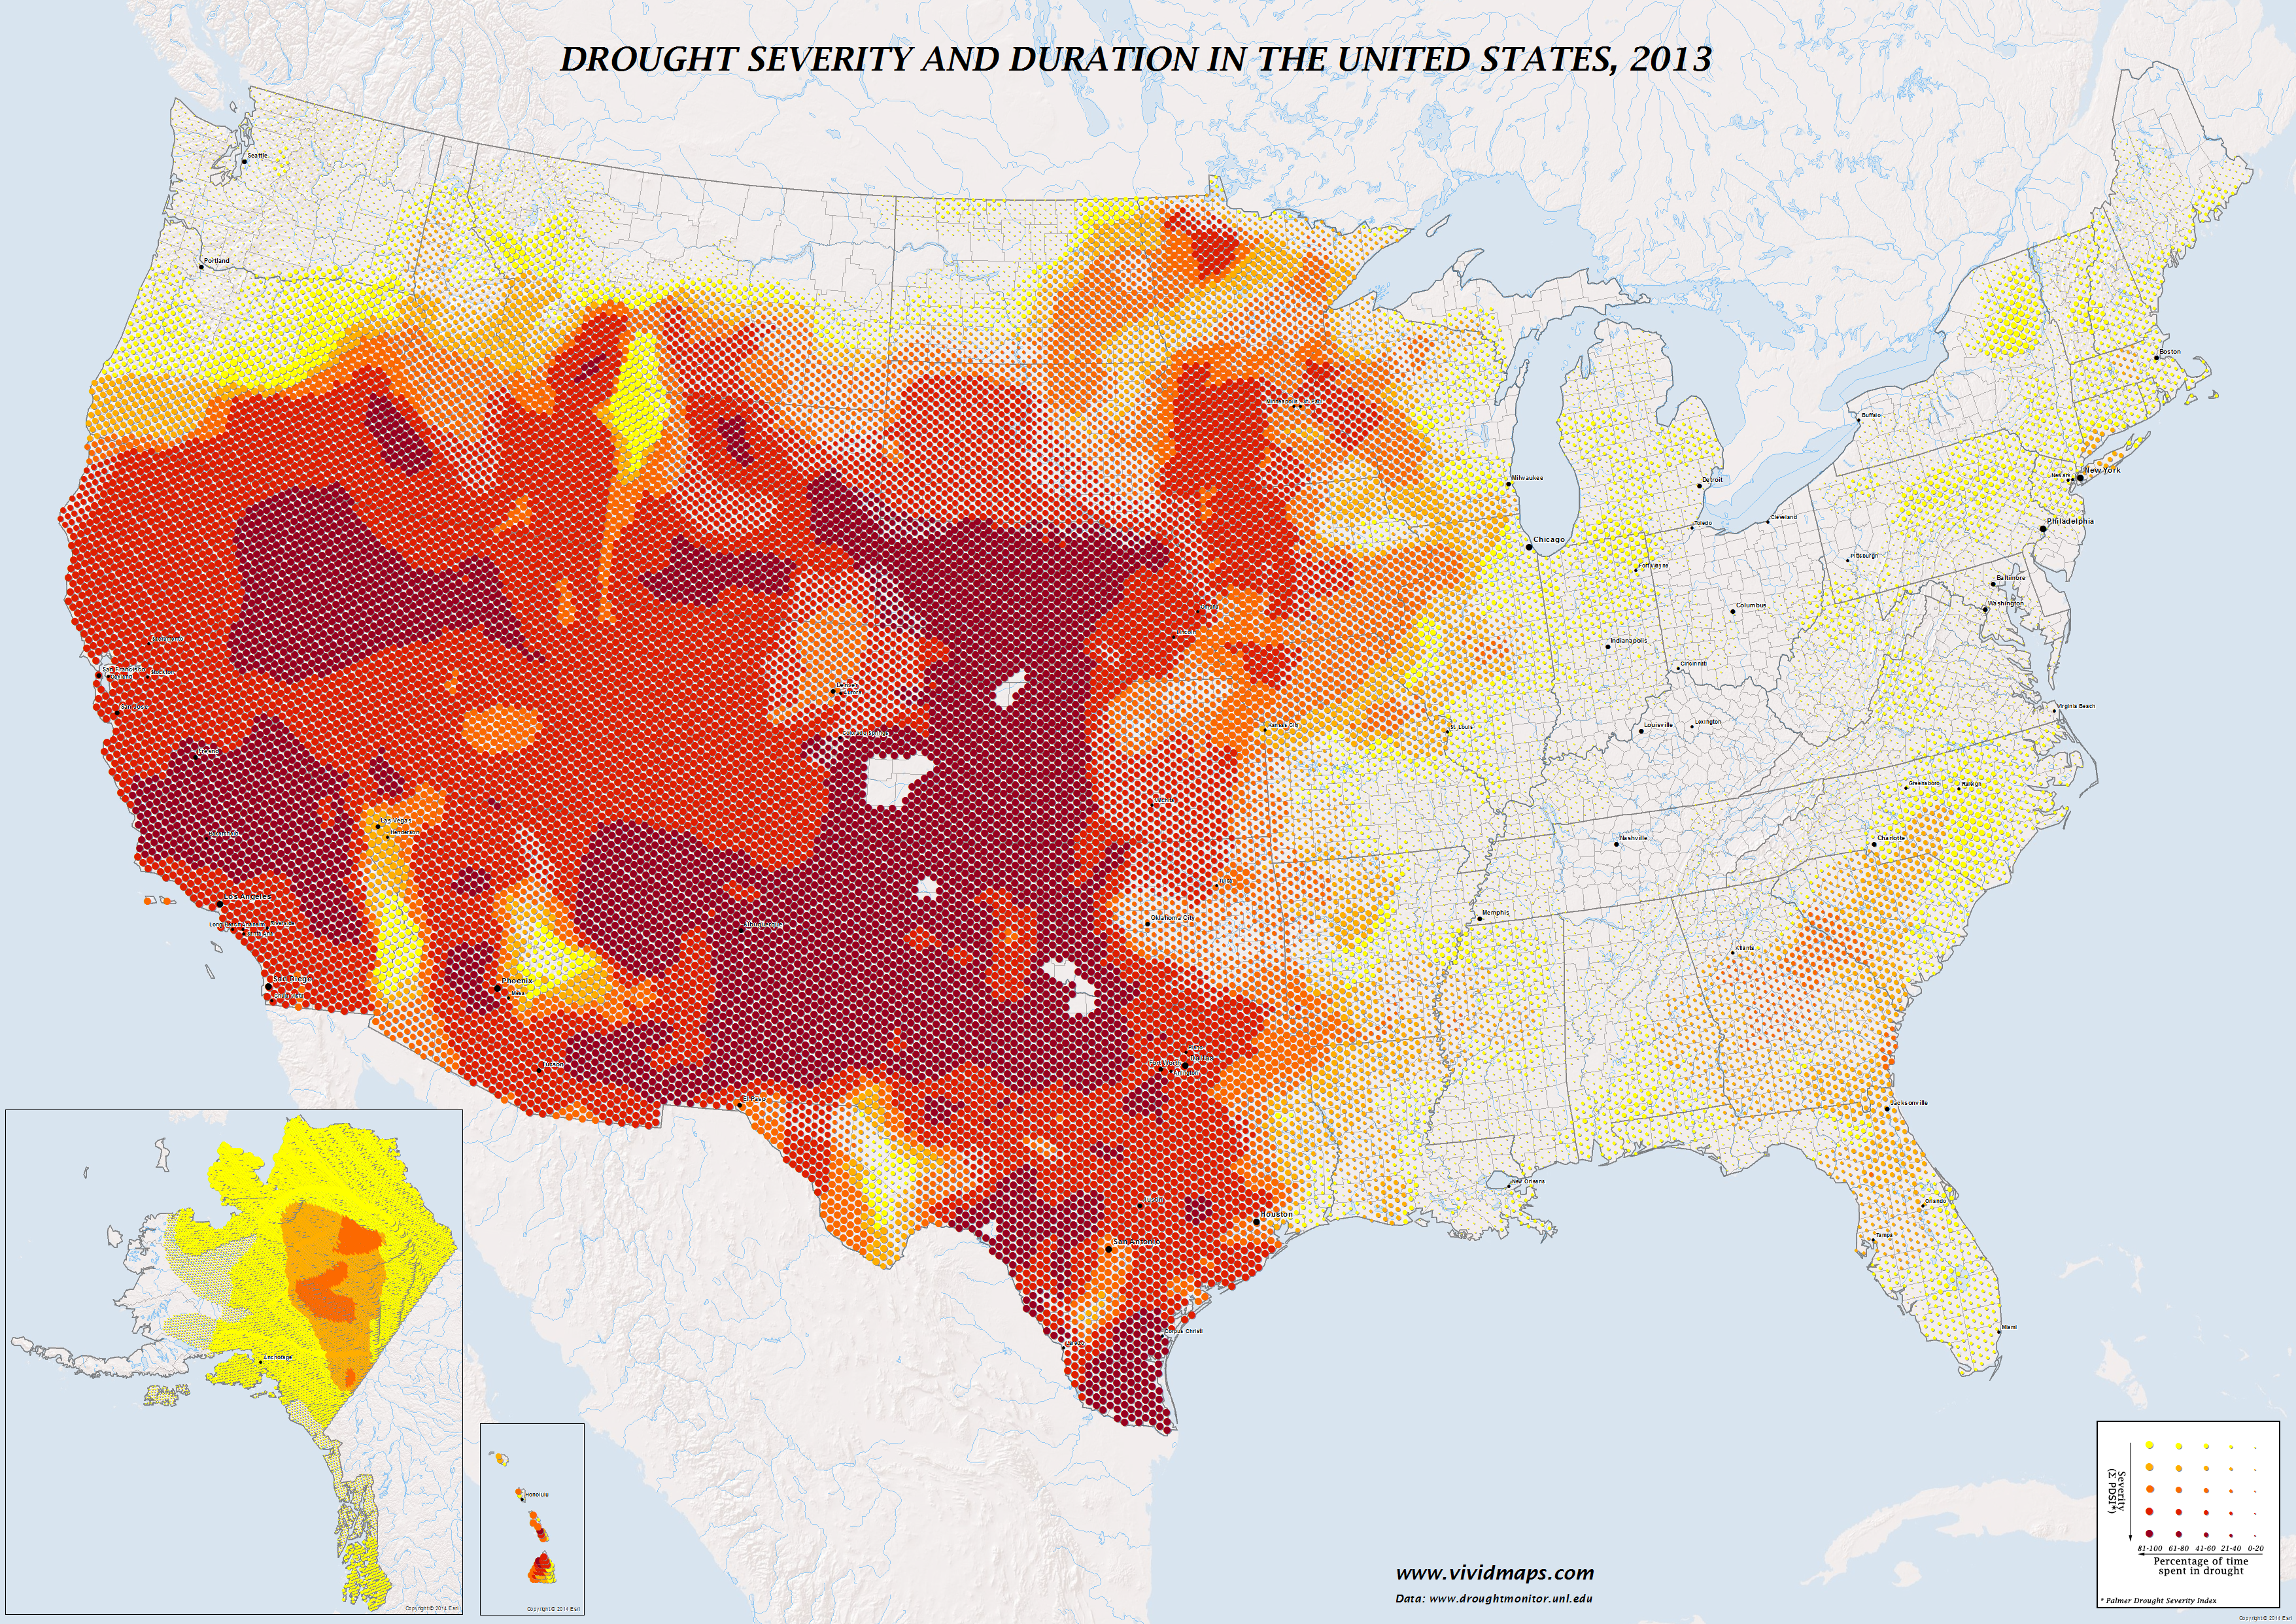 Drought severity and duration in the United States (2013)